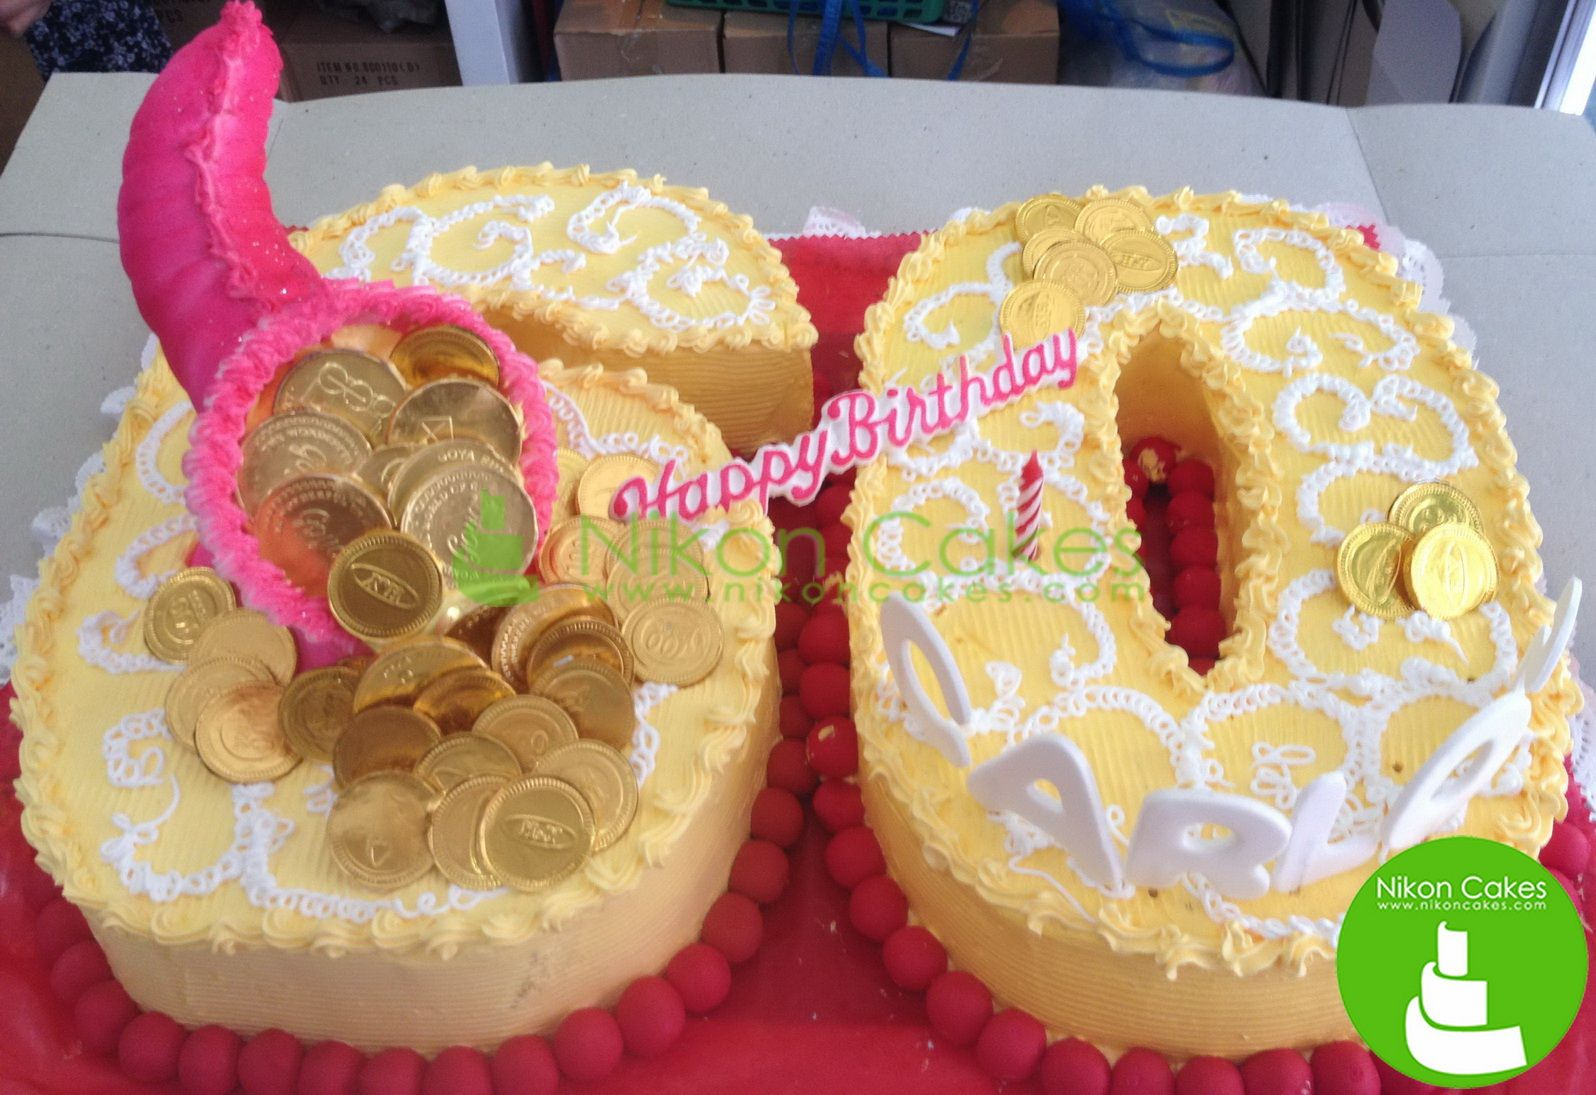 Welcome your golden years with us. Must love Nikon Cakes. Check out our site for more sumptuous delights www.nikoncakes.com/